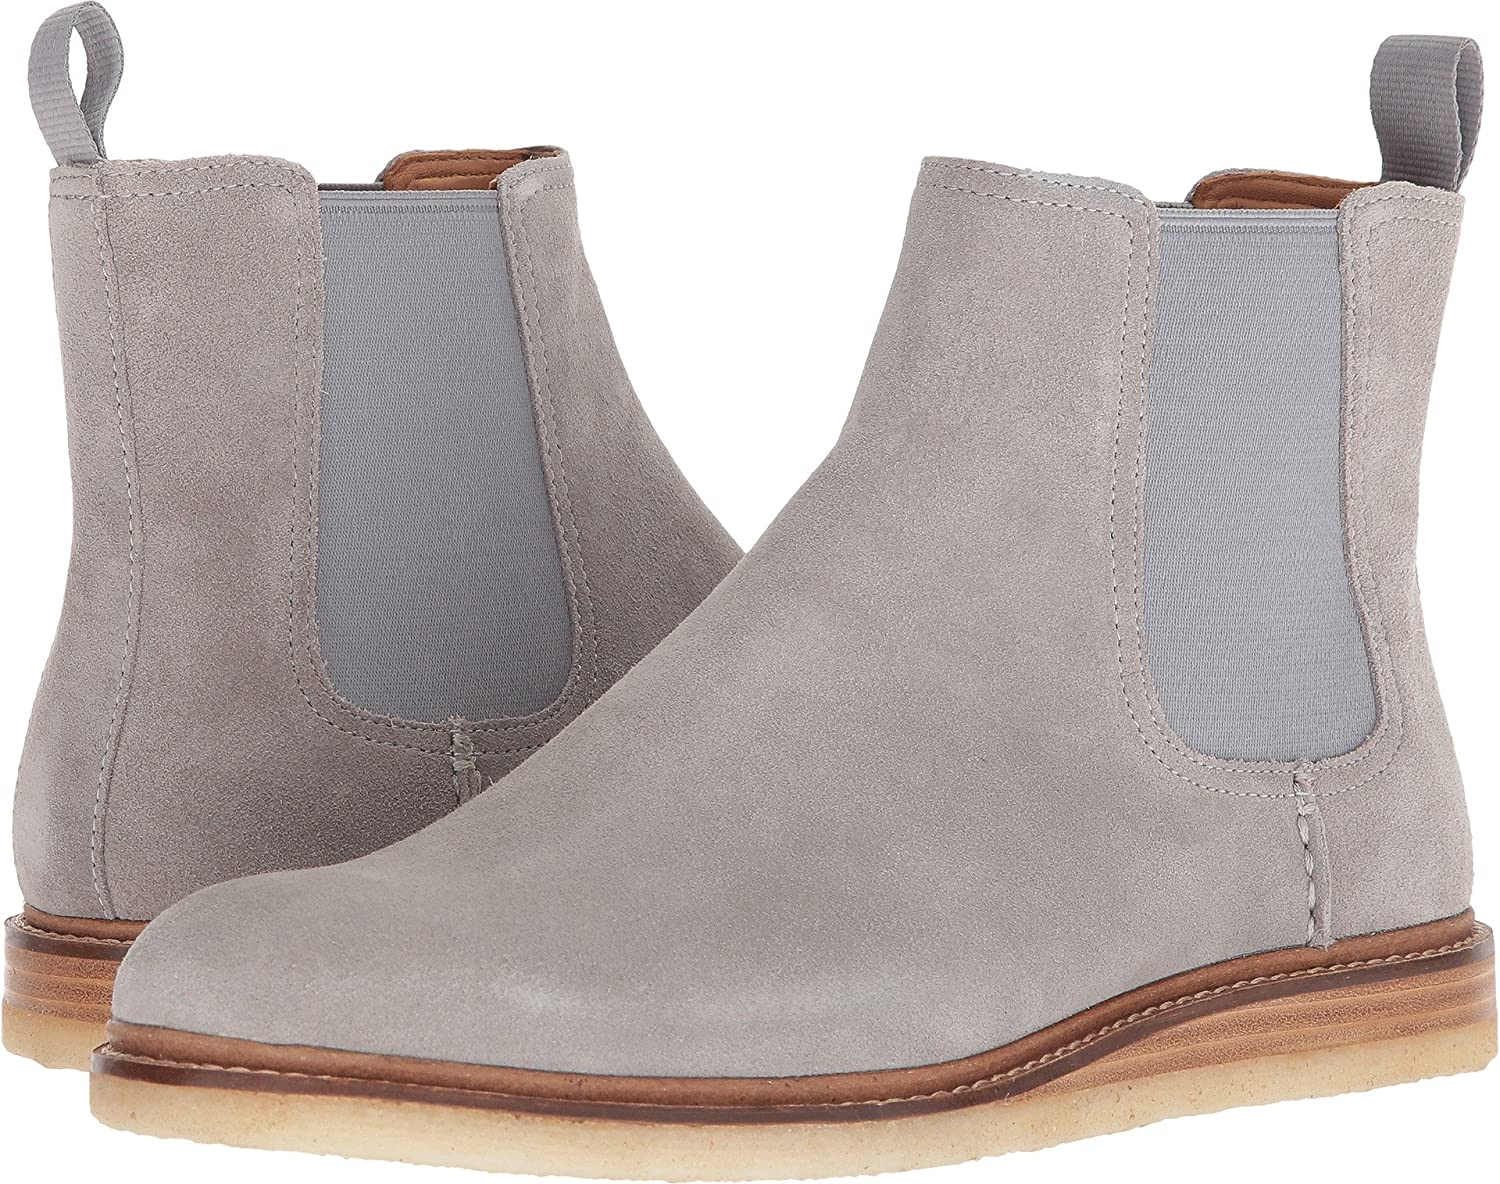 Gold Cup Suede Chelsea Boots Gray